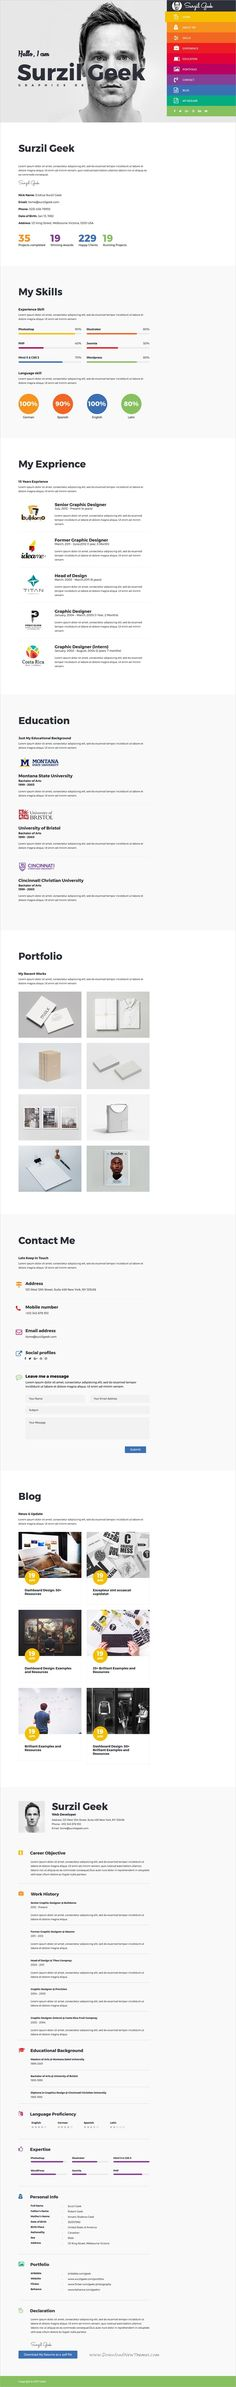 No need to turn the Internet upside down to get a personal resume - wordpress resume theme